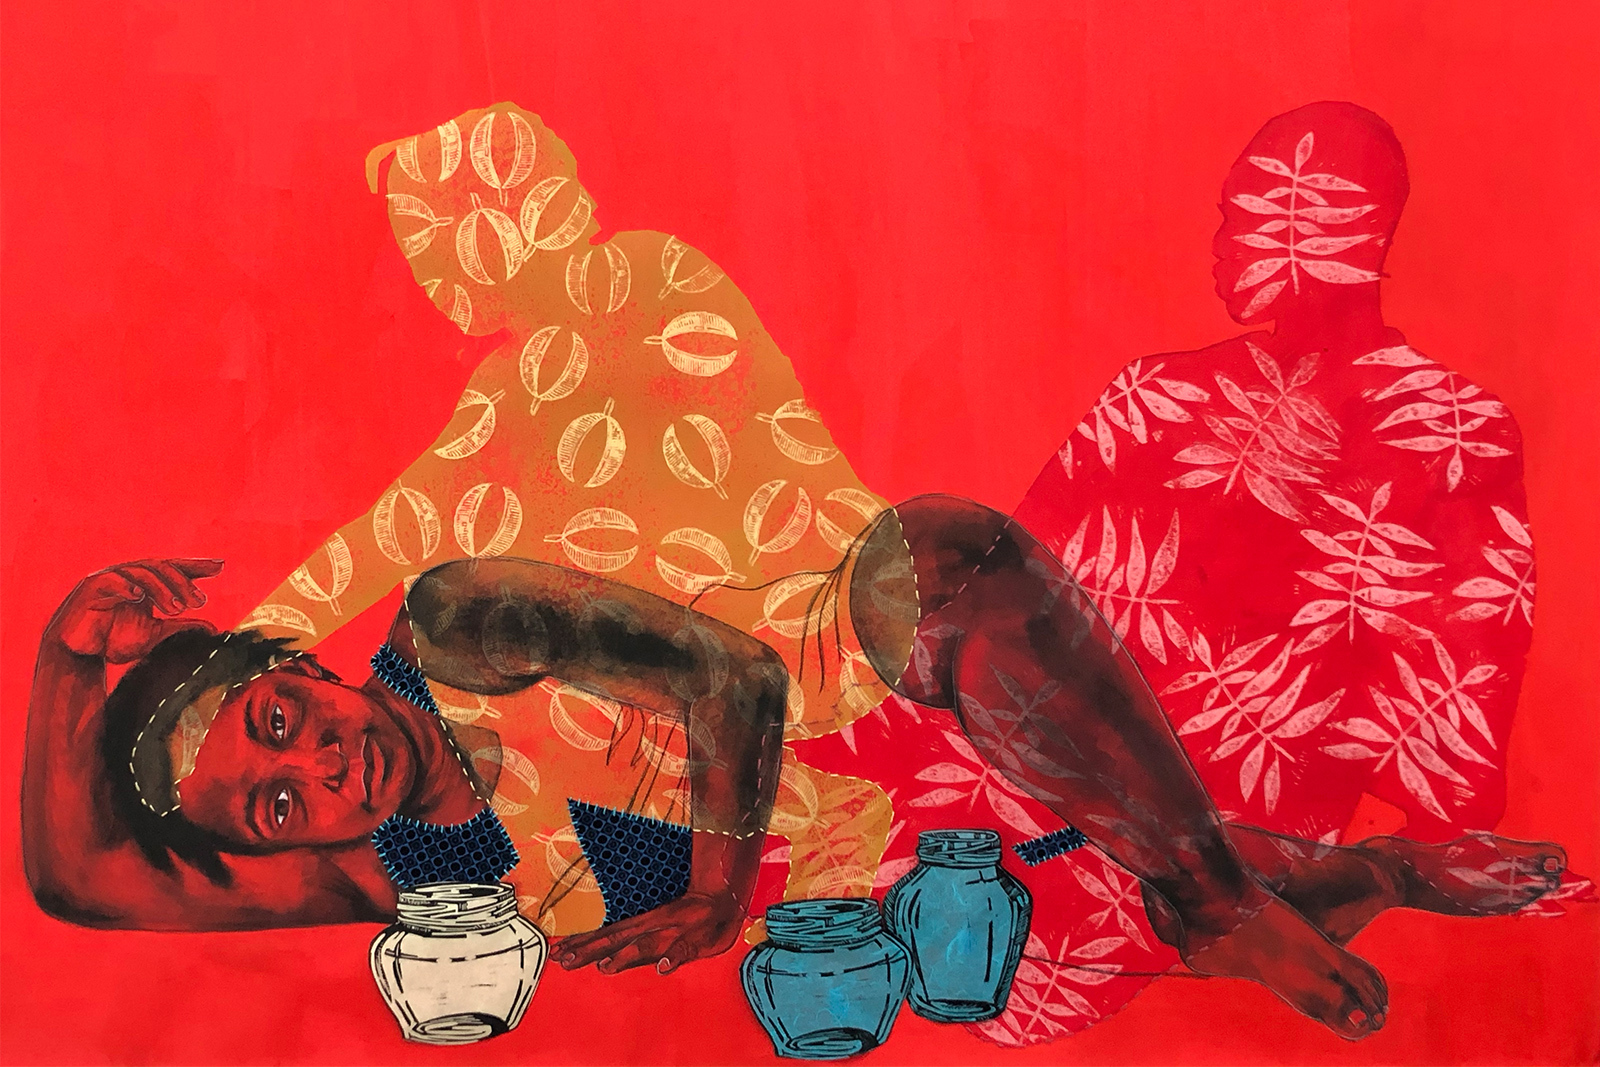 Delita Martin mixed media work amog shadows shows a figure reclining on her side while two human shillouhettes sit beside her